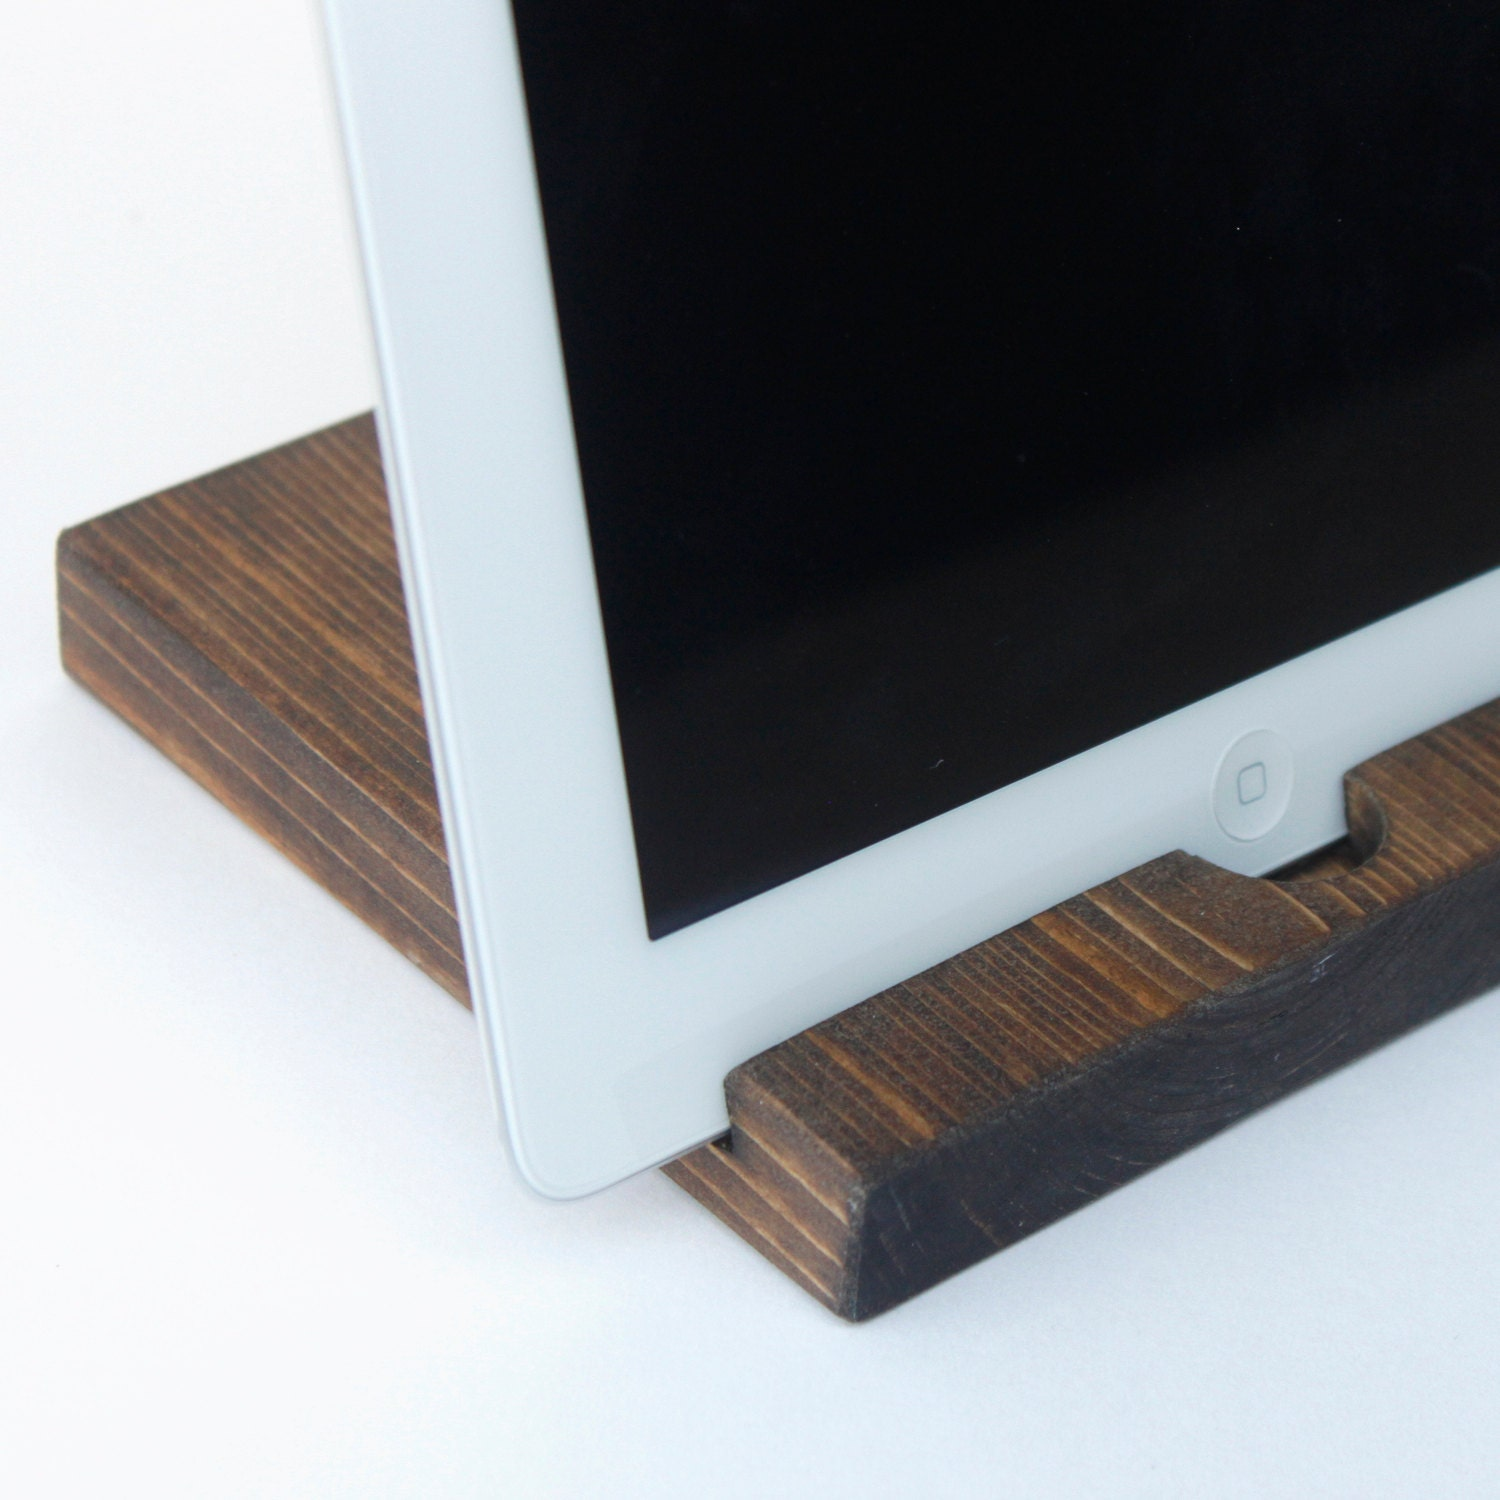 Wooden IPad Stand By Whitneyraepaper On Etsy. Full resolution‎  portrait, nominally Width 1500 Height 1500 pixels, portrait with #456A86.